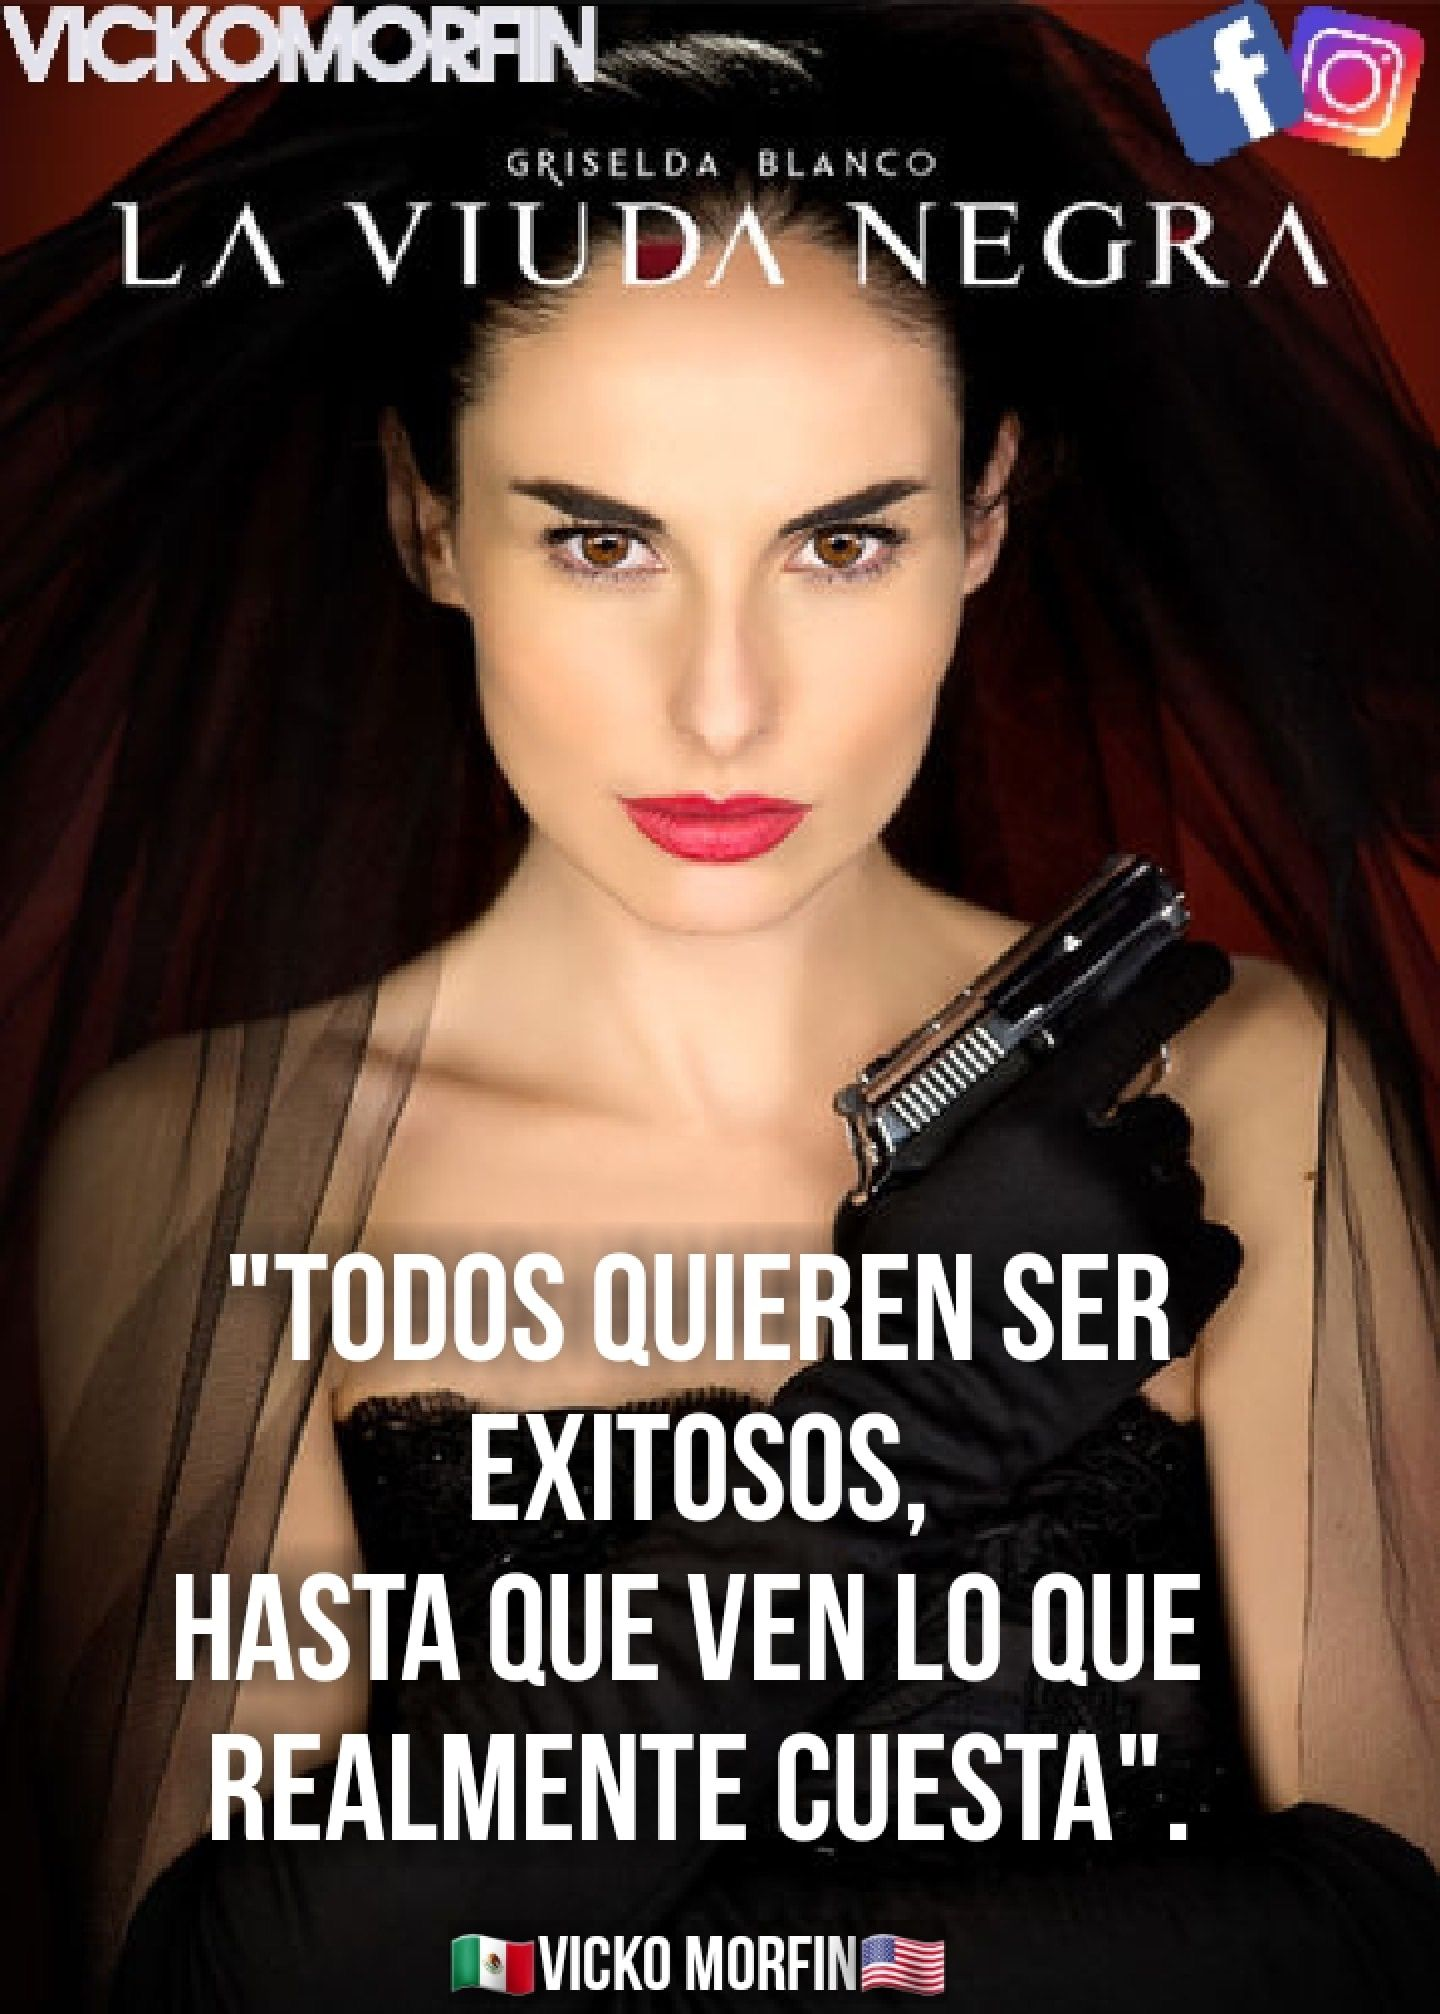 Pin By Frases Y Mas On Frases De La Vida Movie Posters